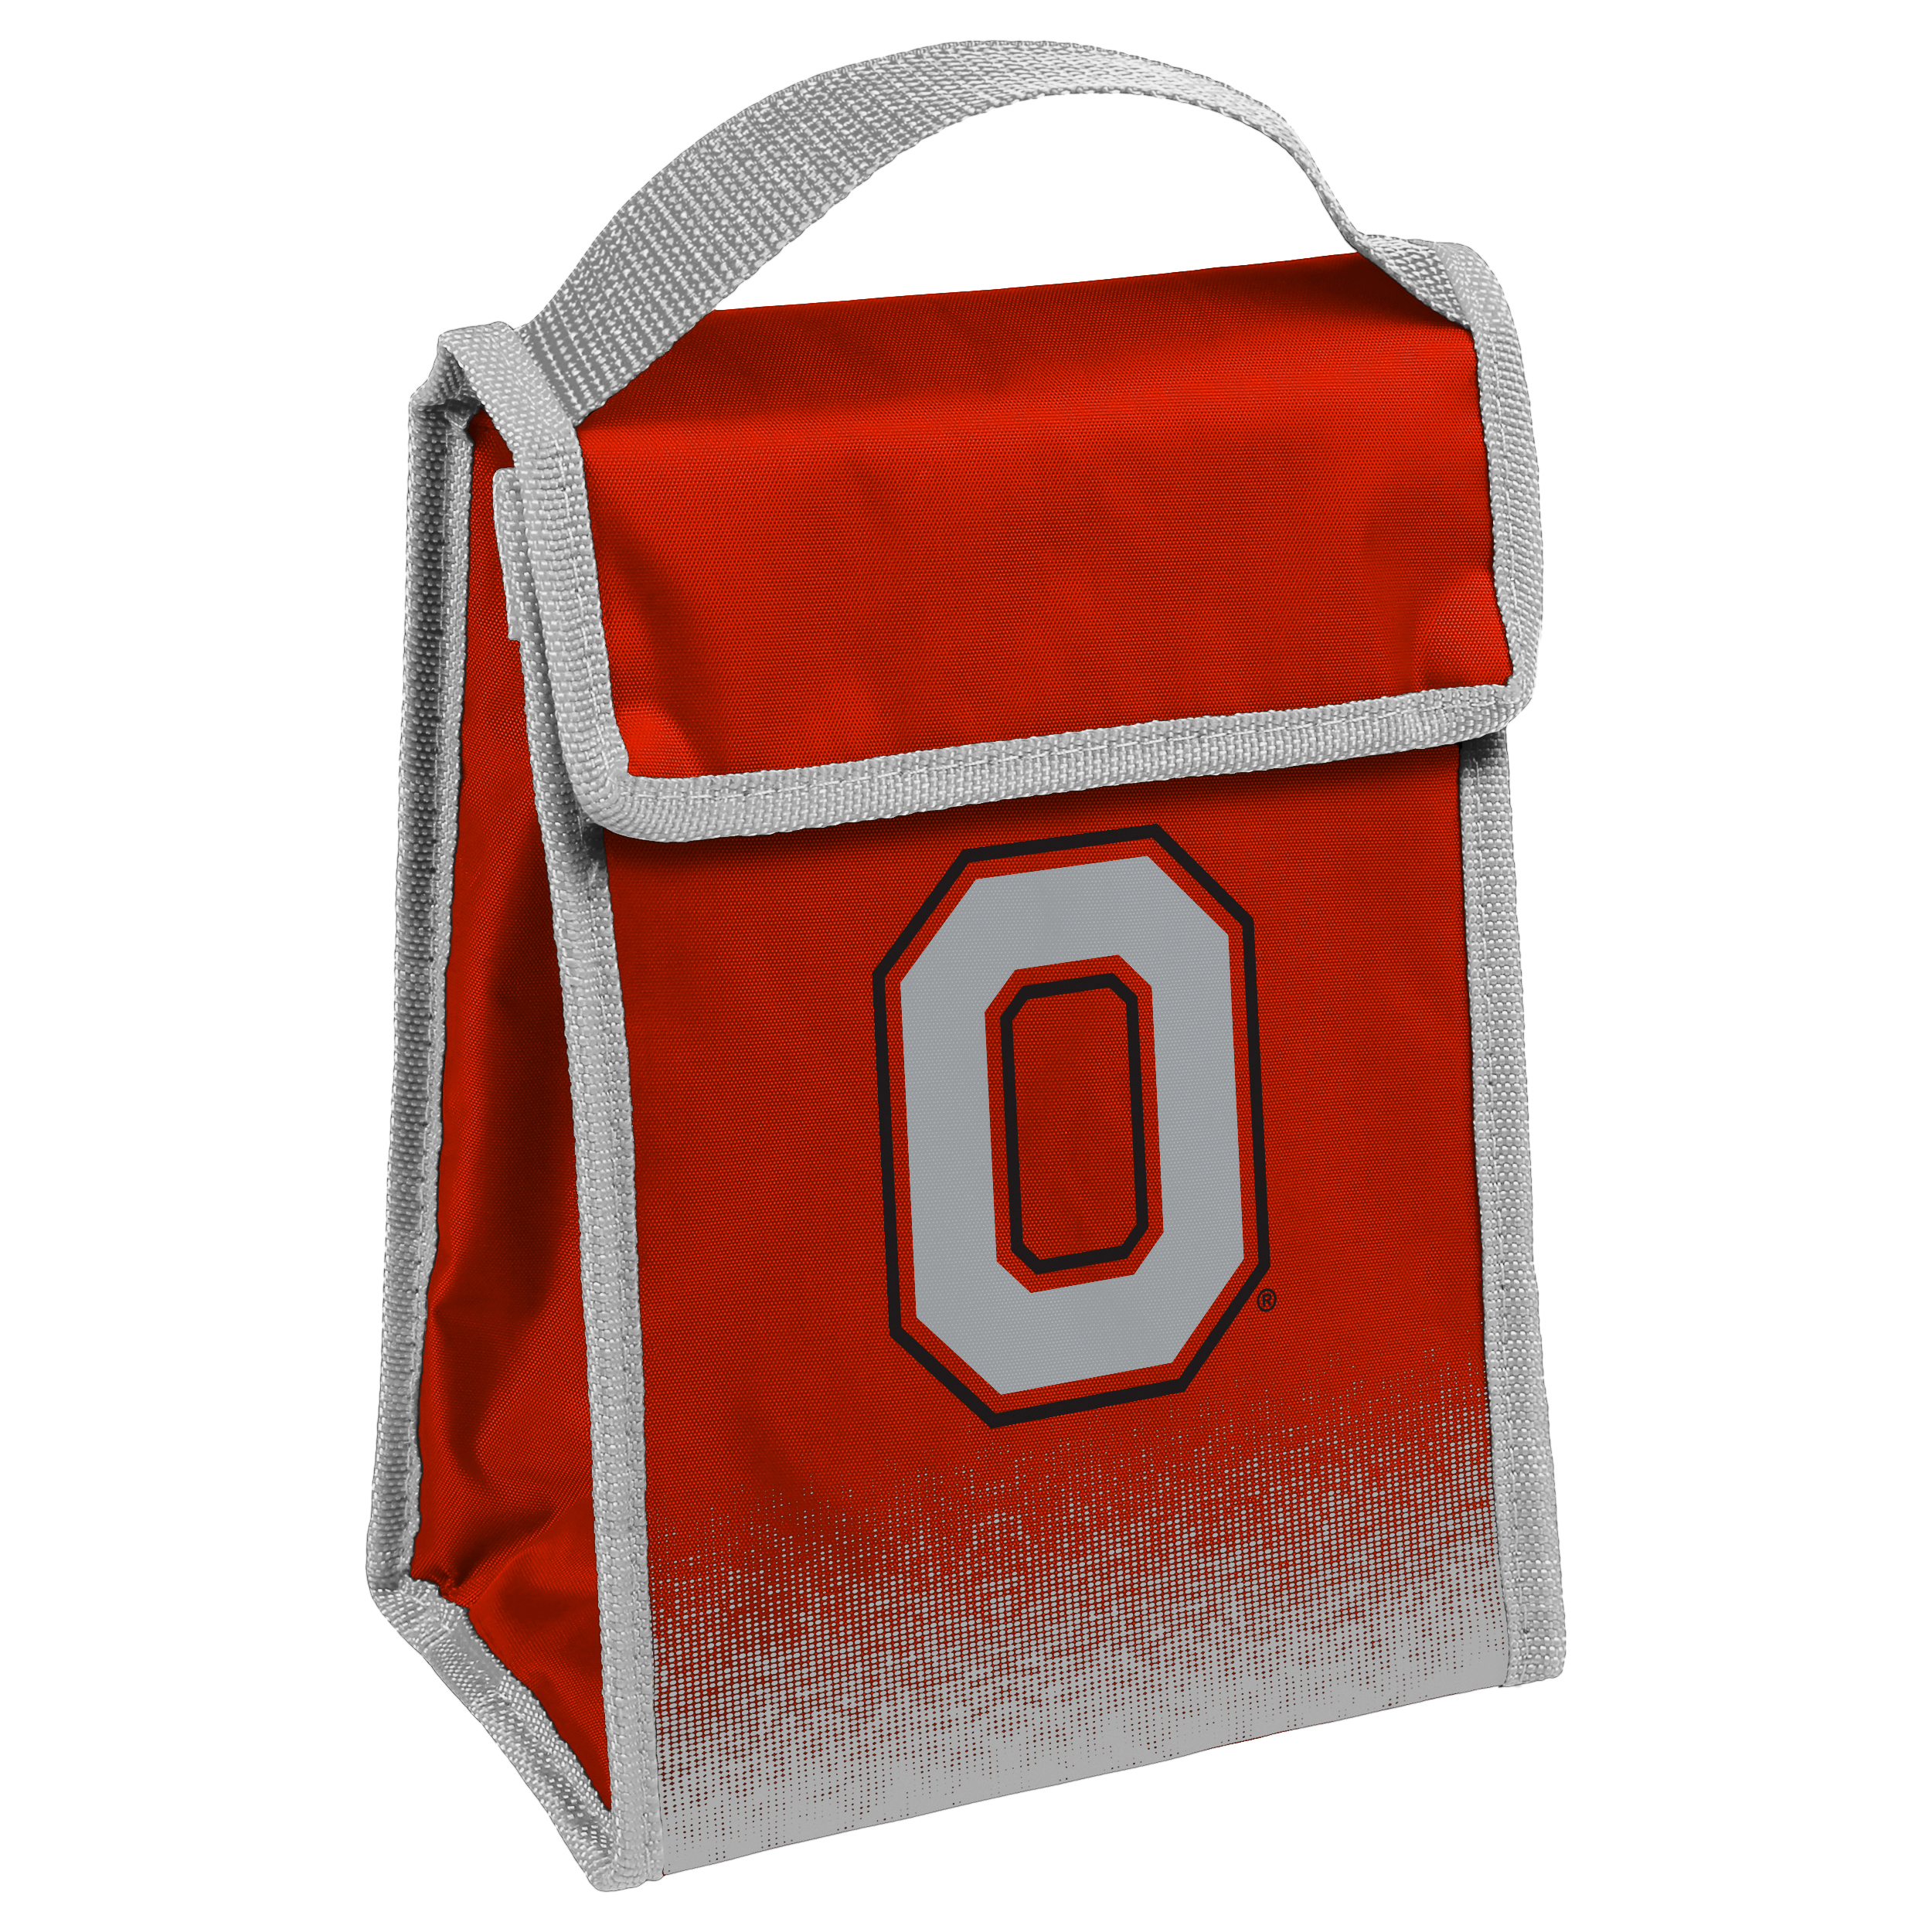 Ohio State Buckeyes Official NCAA Lunch Box Bag by Forever Collectibles 067627